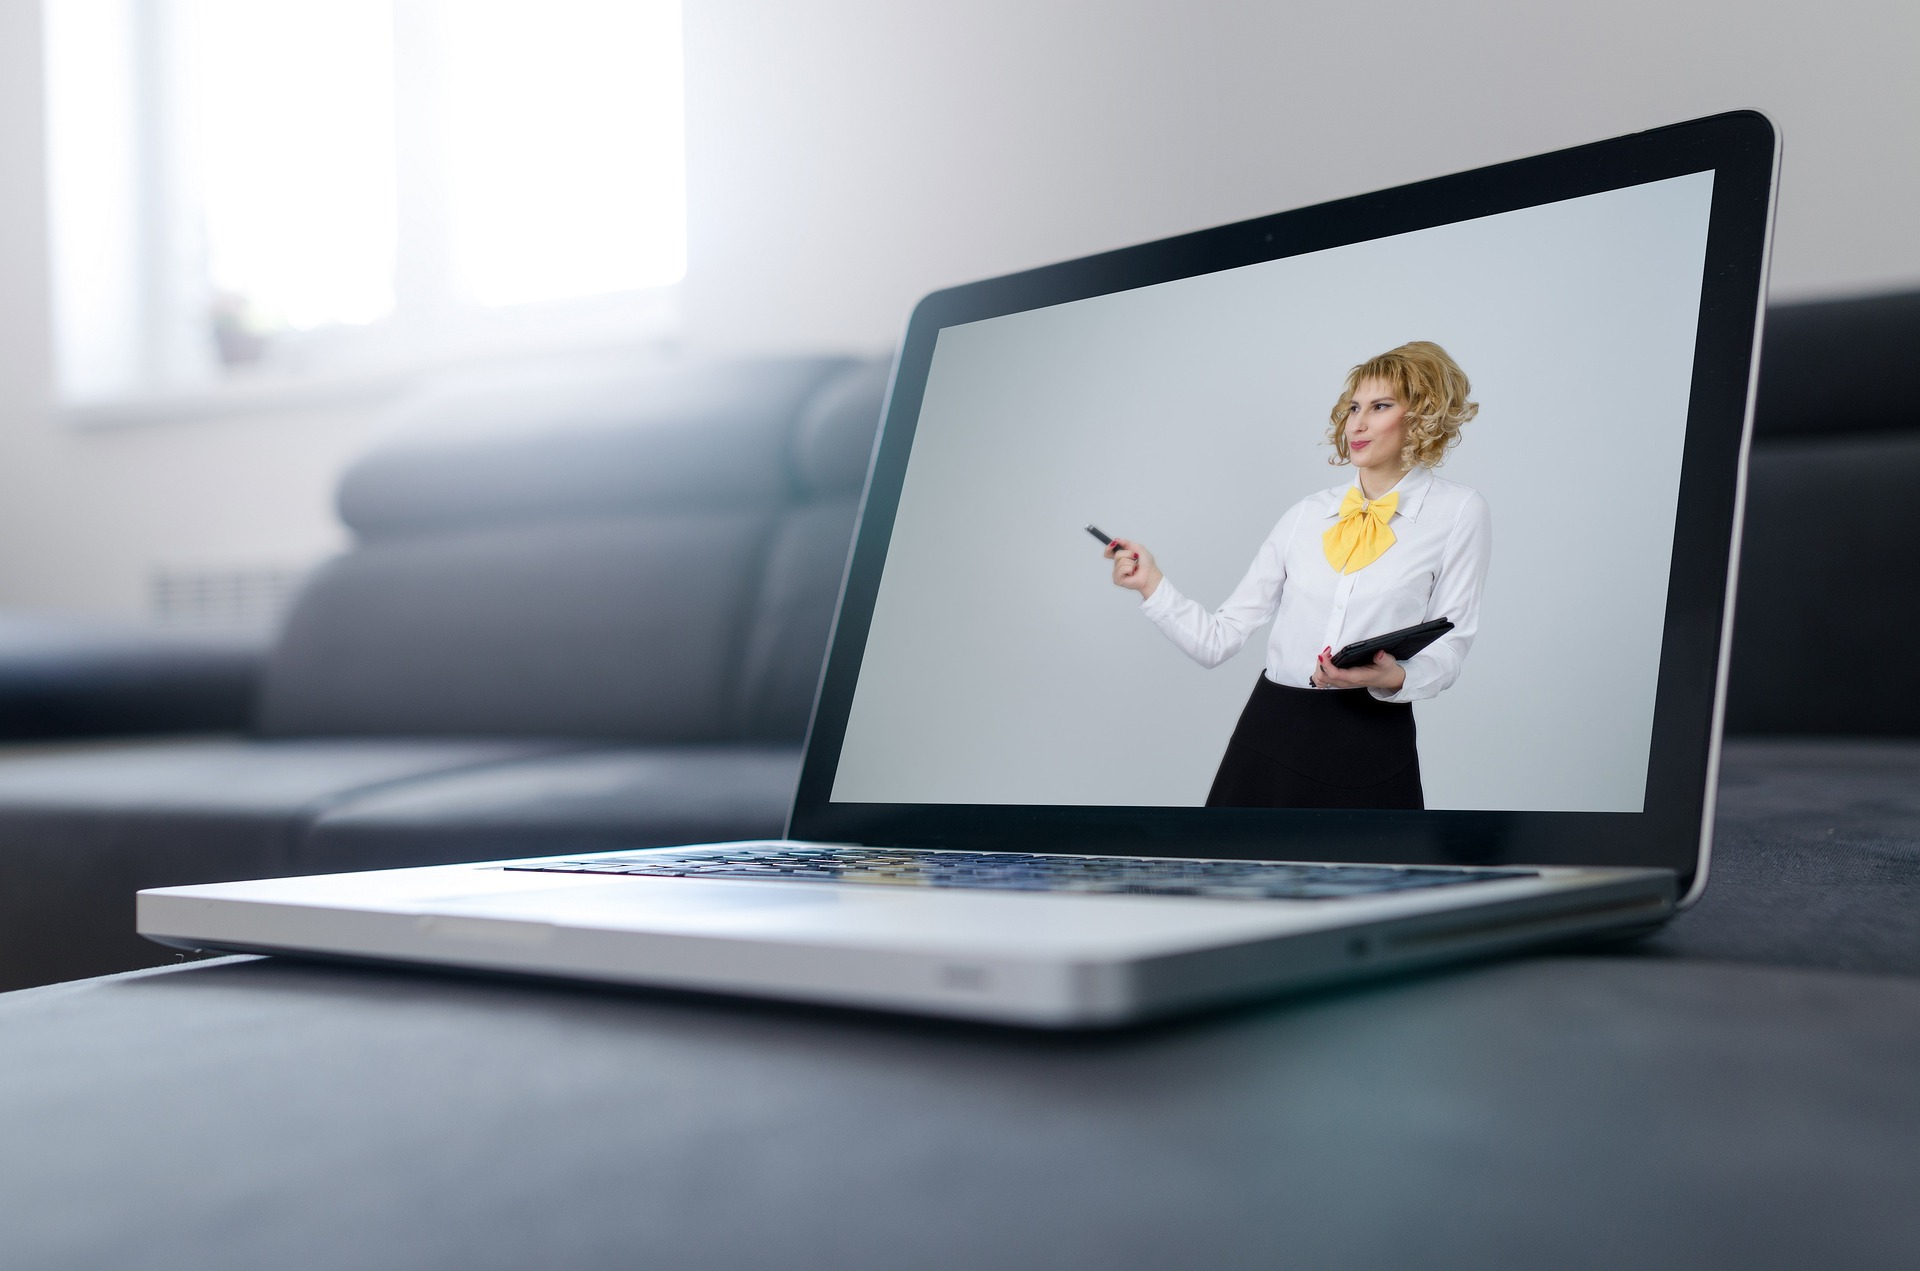 Coronavirus Confinement: 5 Reasons Why Meetings Through Zoom Are So Strenuous